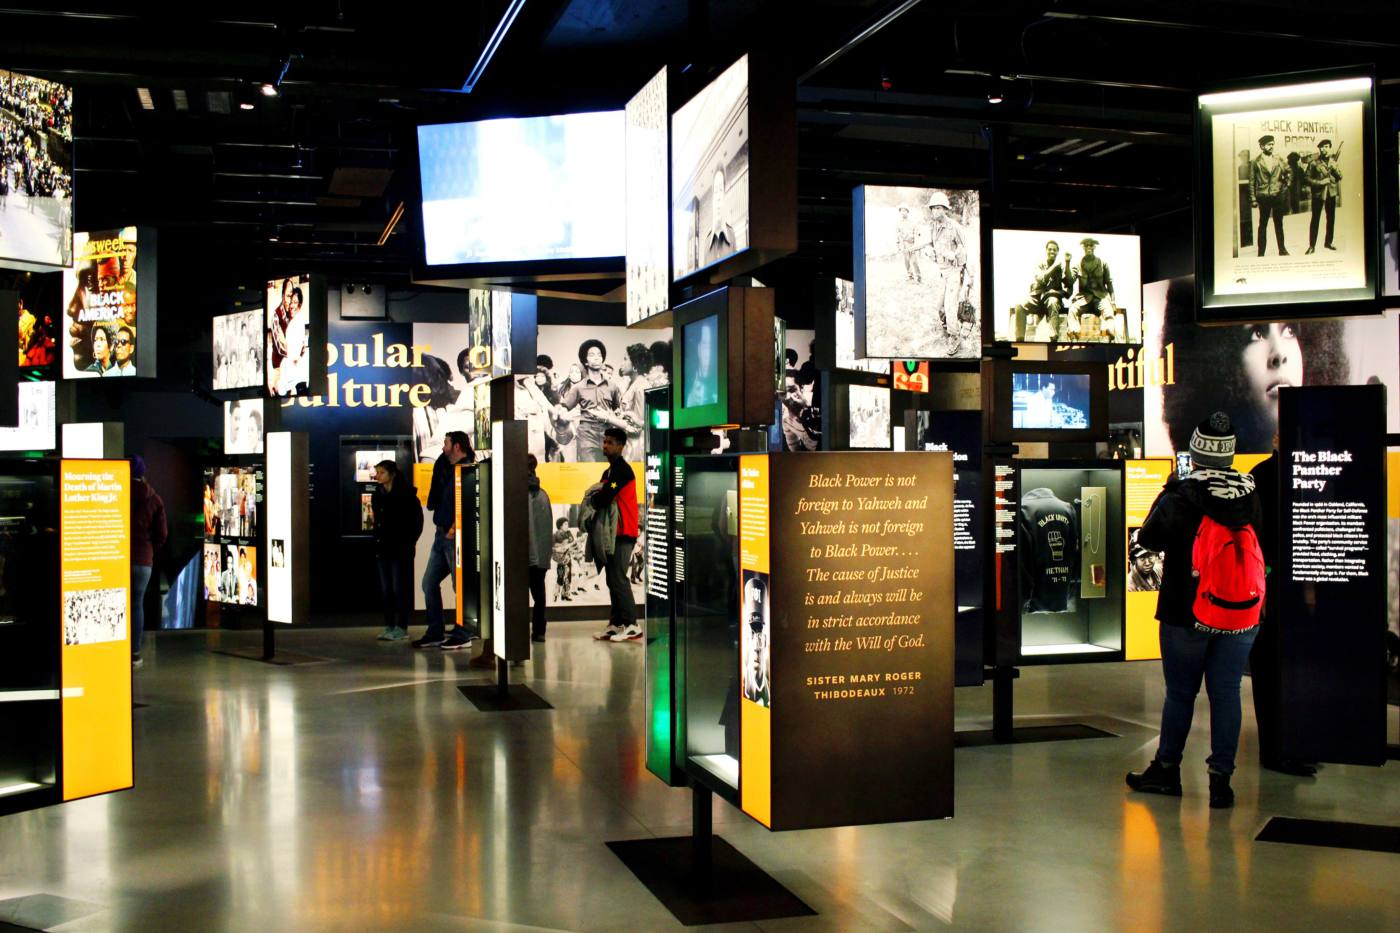 national-museum-of-african-american-history-and-culture-dc